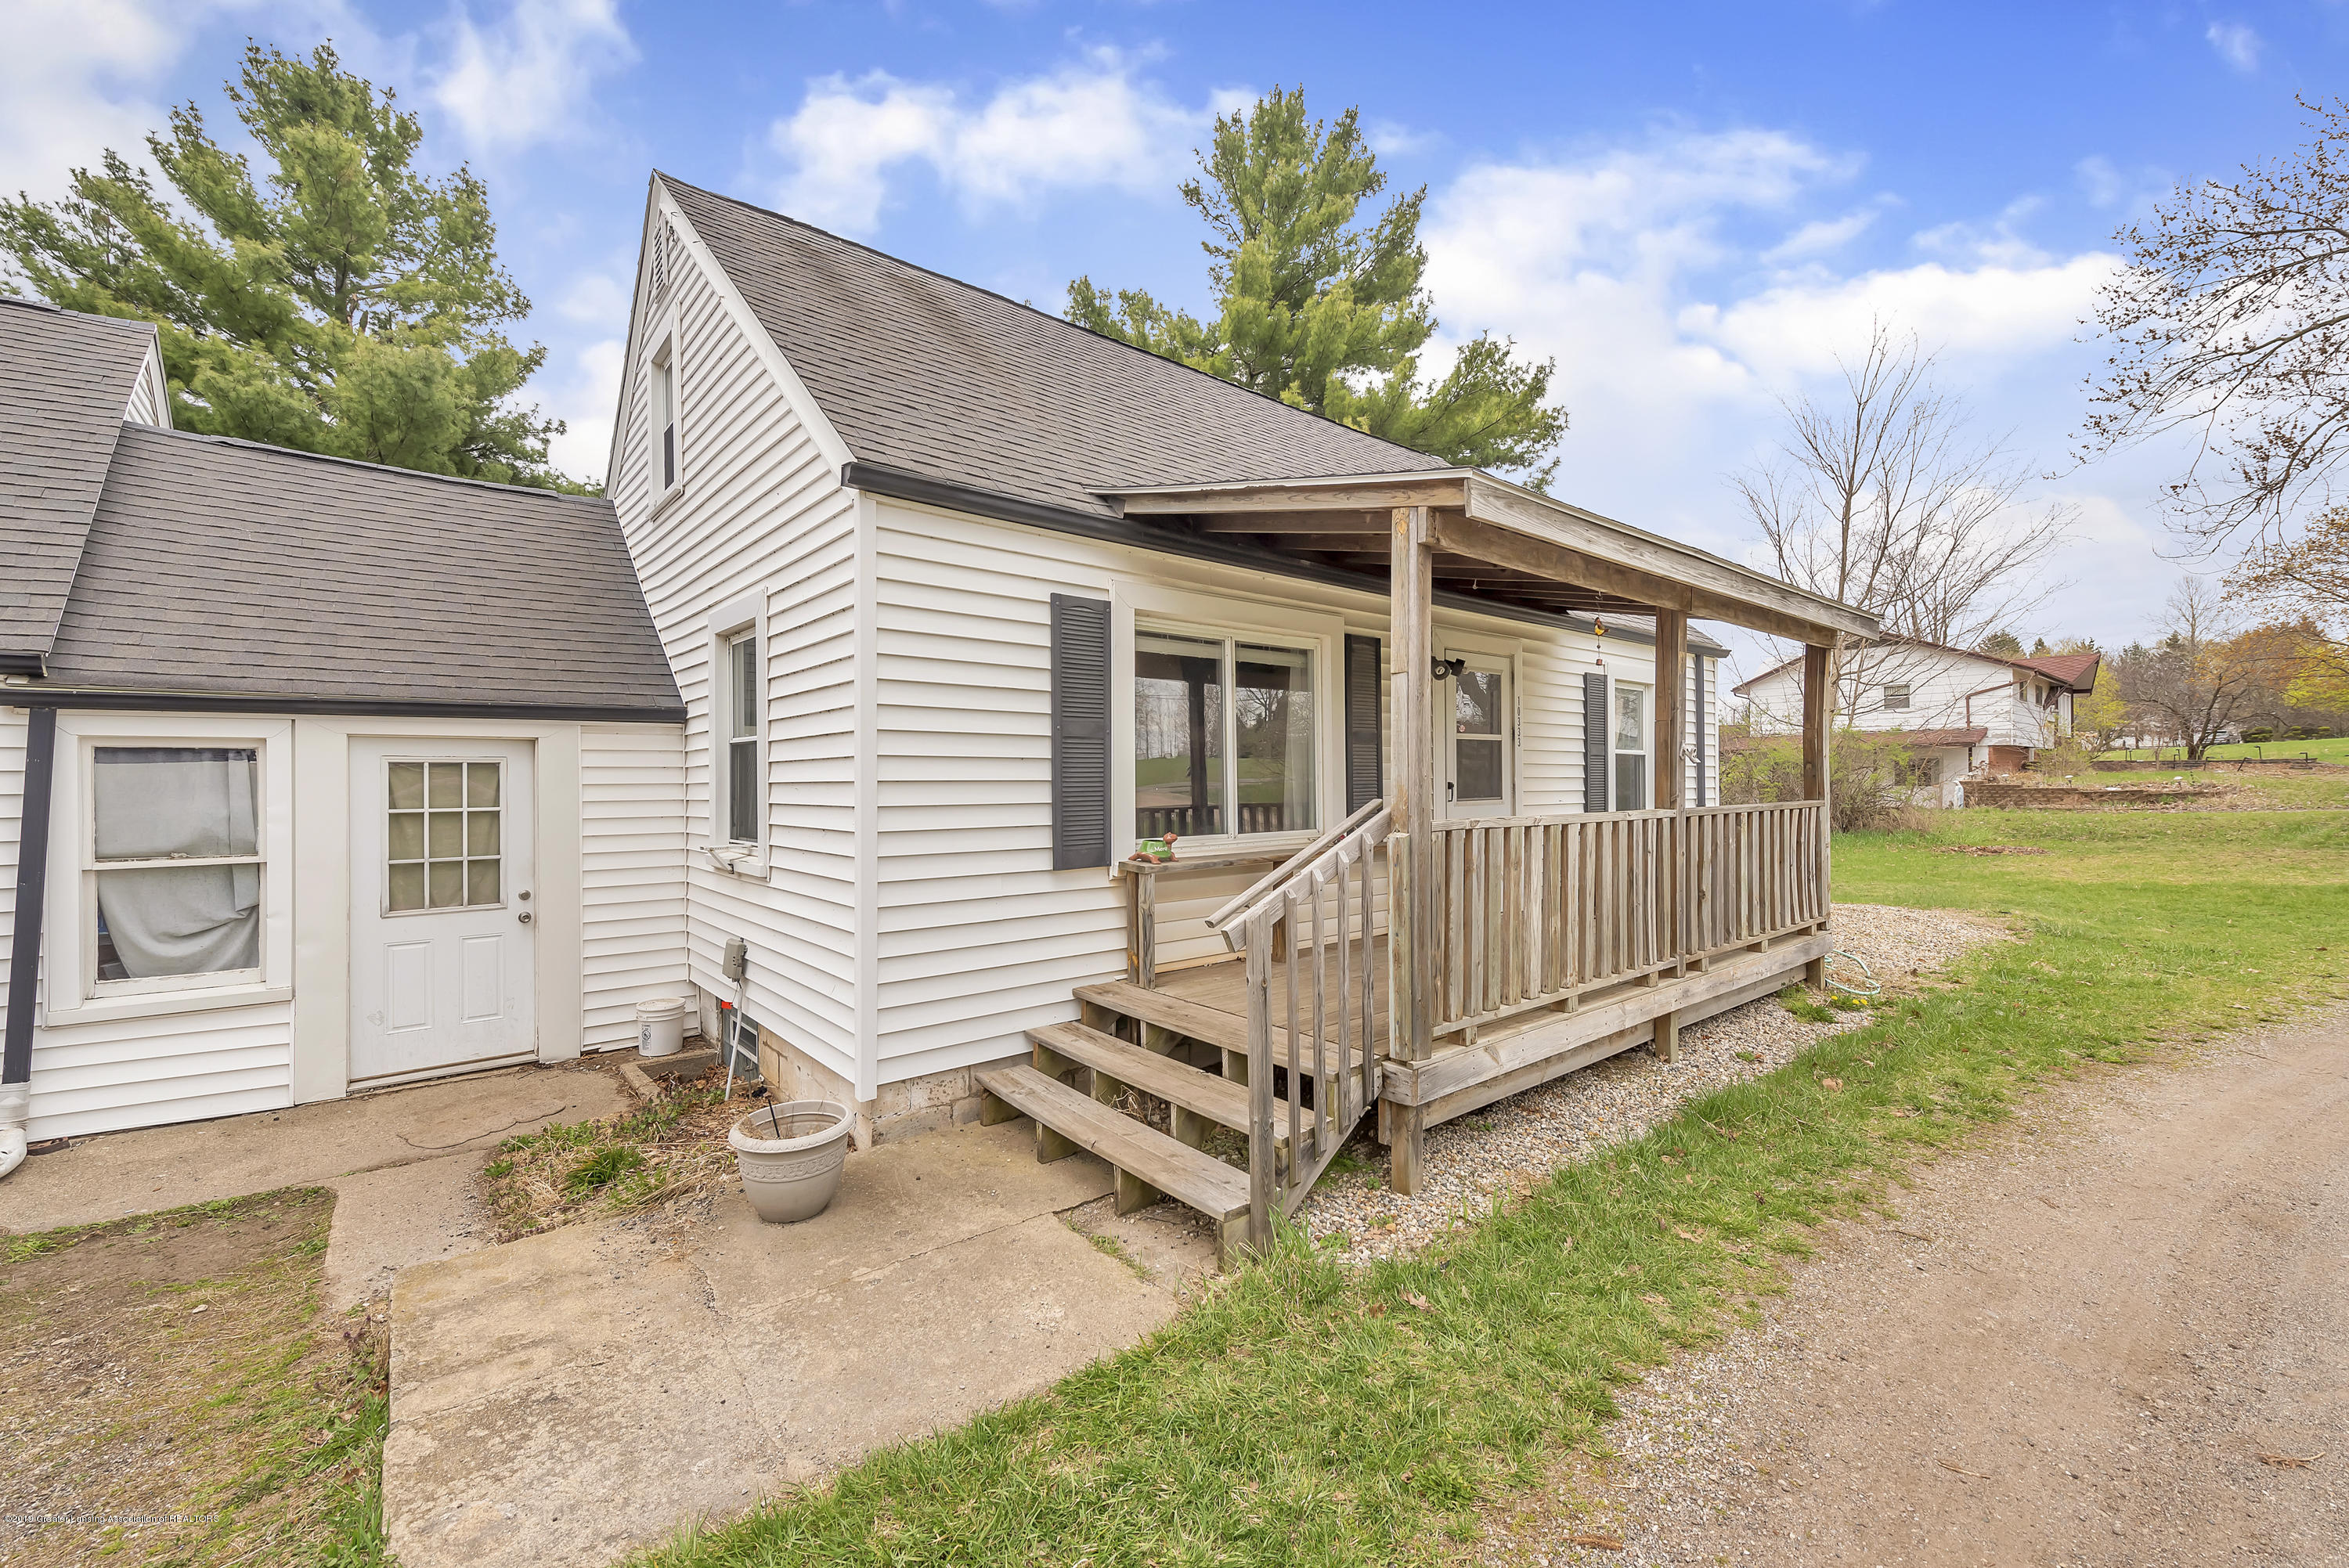 10333 Plains Rd - 10333-Plains-Road-Eaton-Rapids-Michigan- - 3